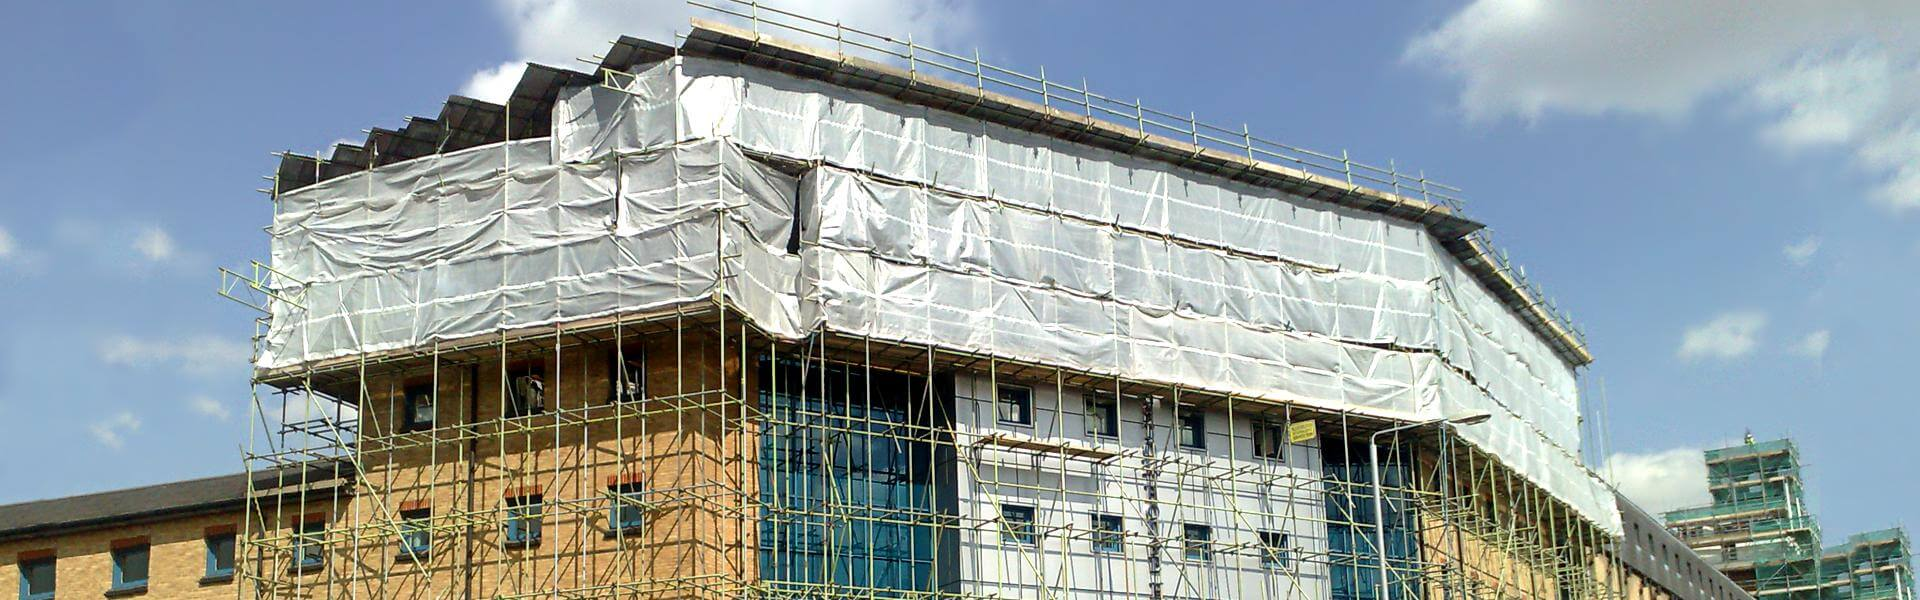 Professional scaffolding services to the construction industry